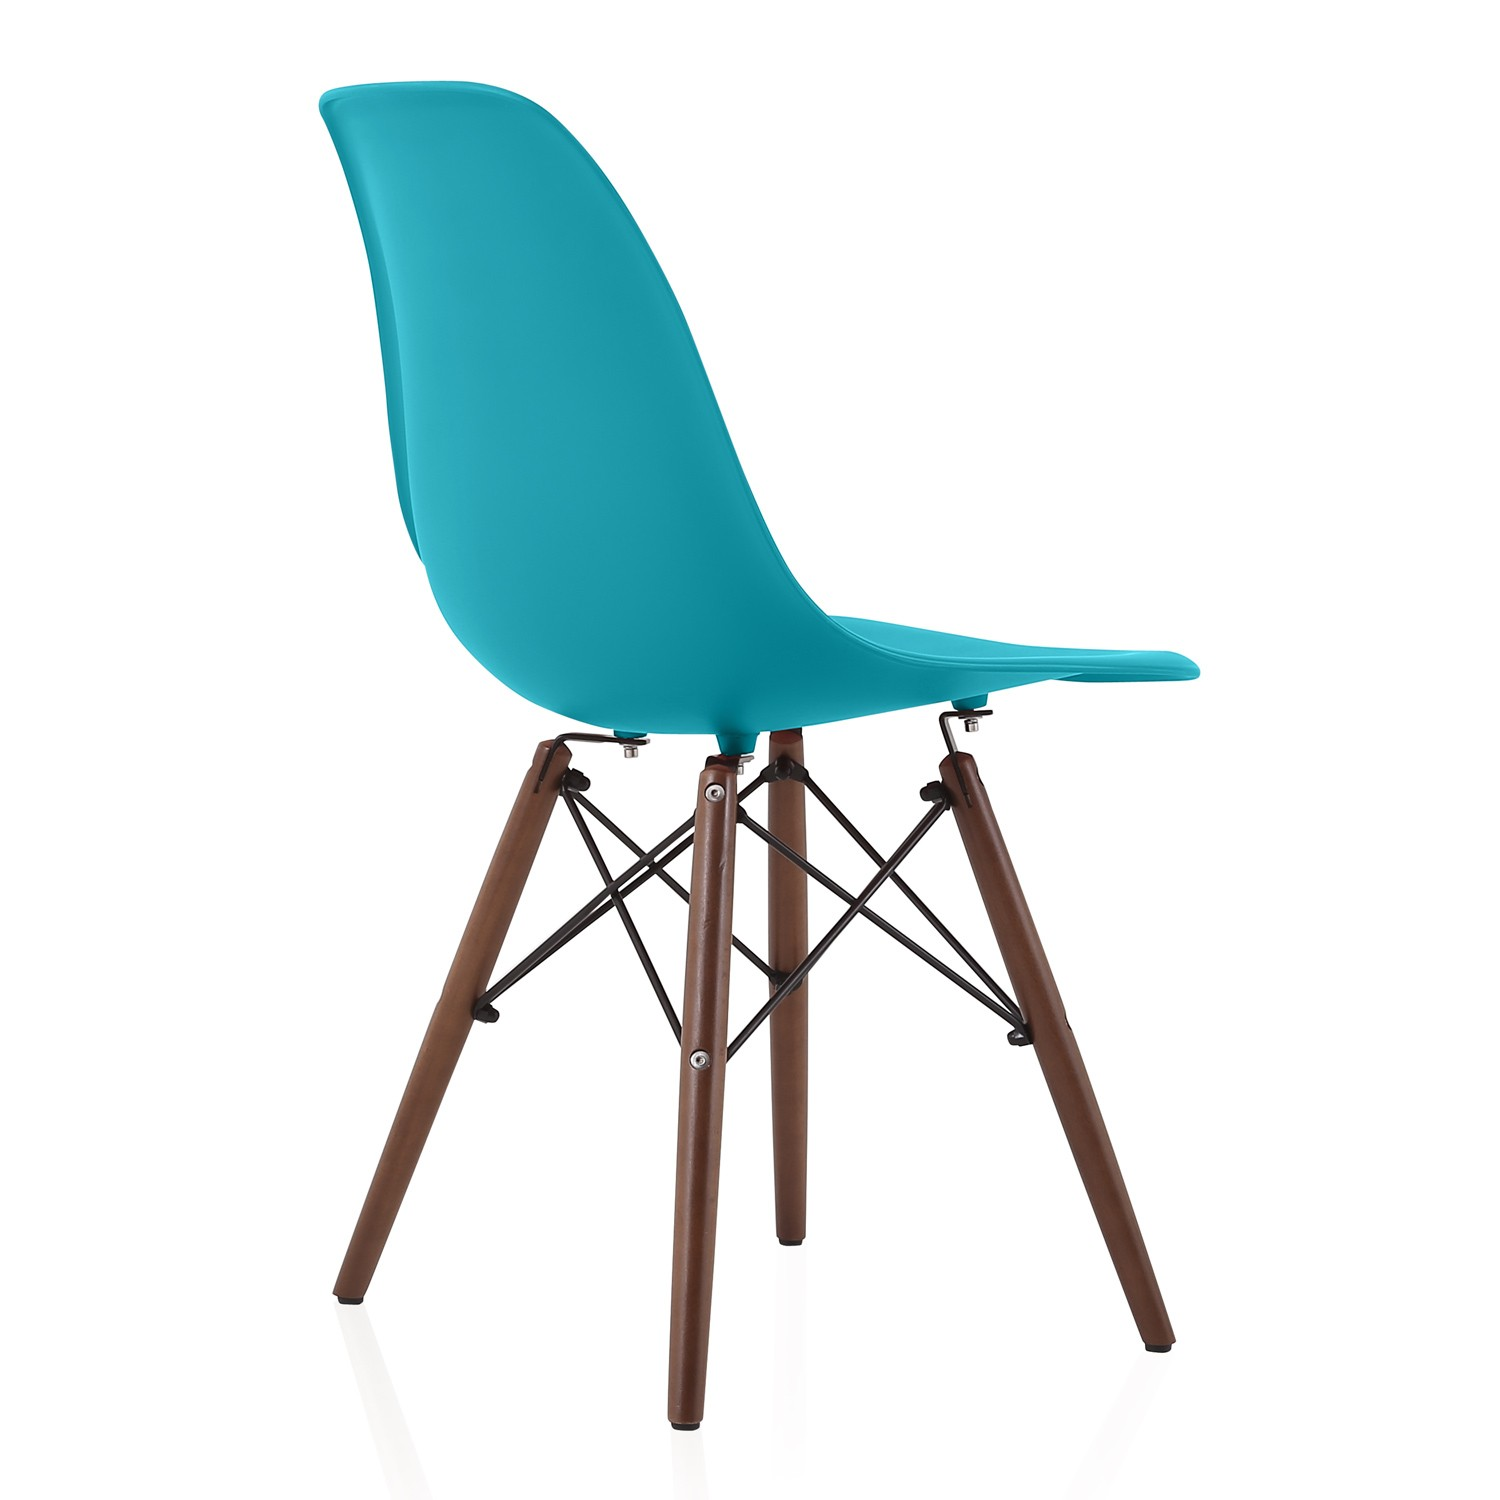 Nature Series Teal Blue Eames Style Dsw Molded Plastic